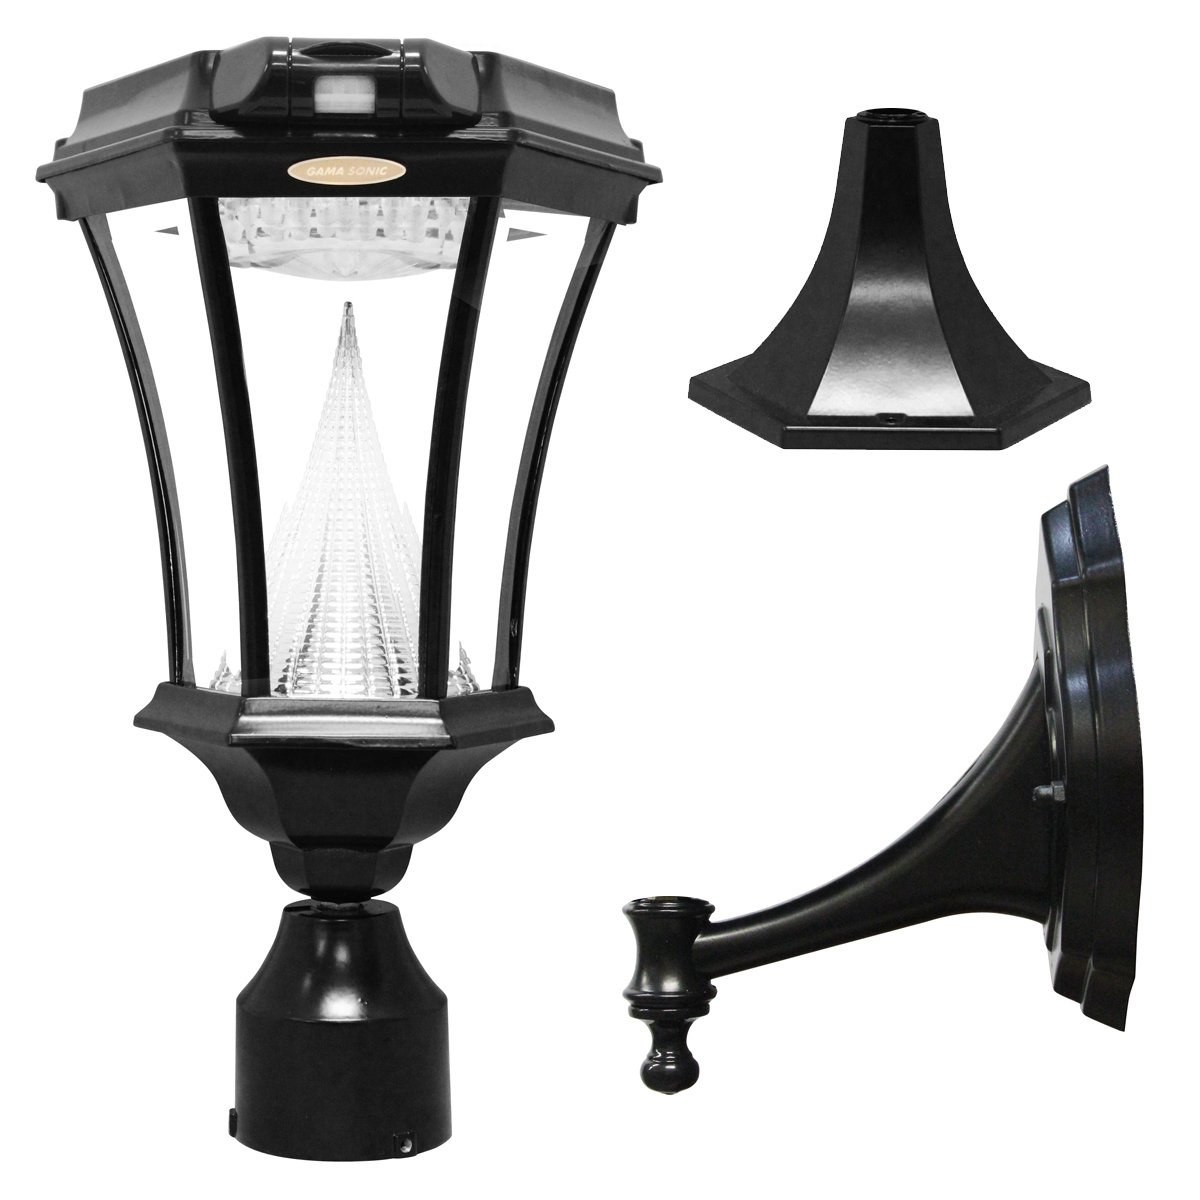 Amazon gama sonic victorian solar outdoor lamp with motion amazon gama sonic victorian solar outdoor lamp with motion sensor bright white leds gs 94fpw pir polepostwall mount kit black finish outdoor aloadofball Image collections